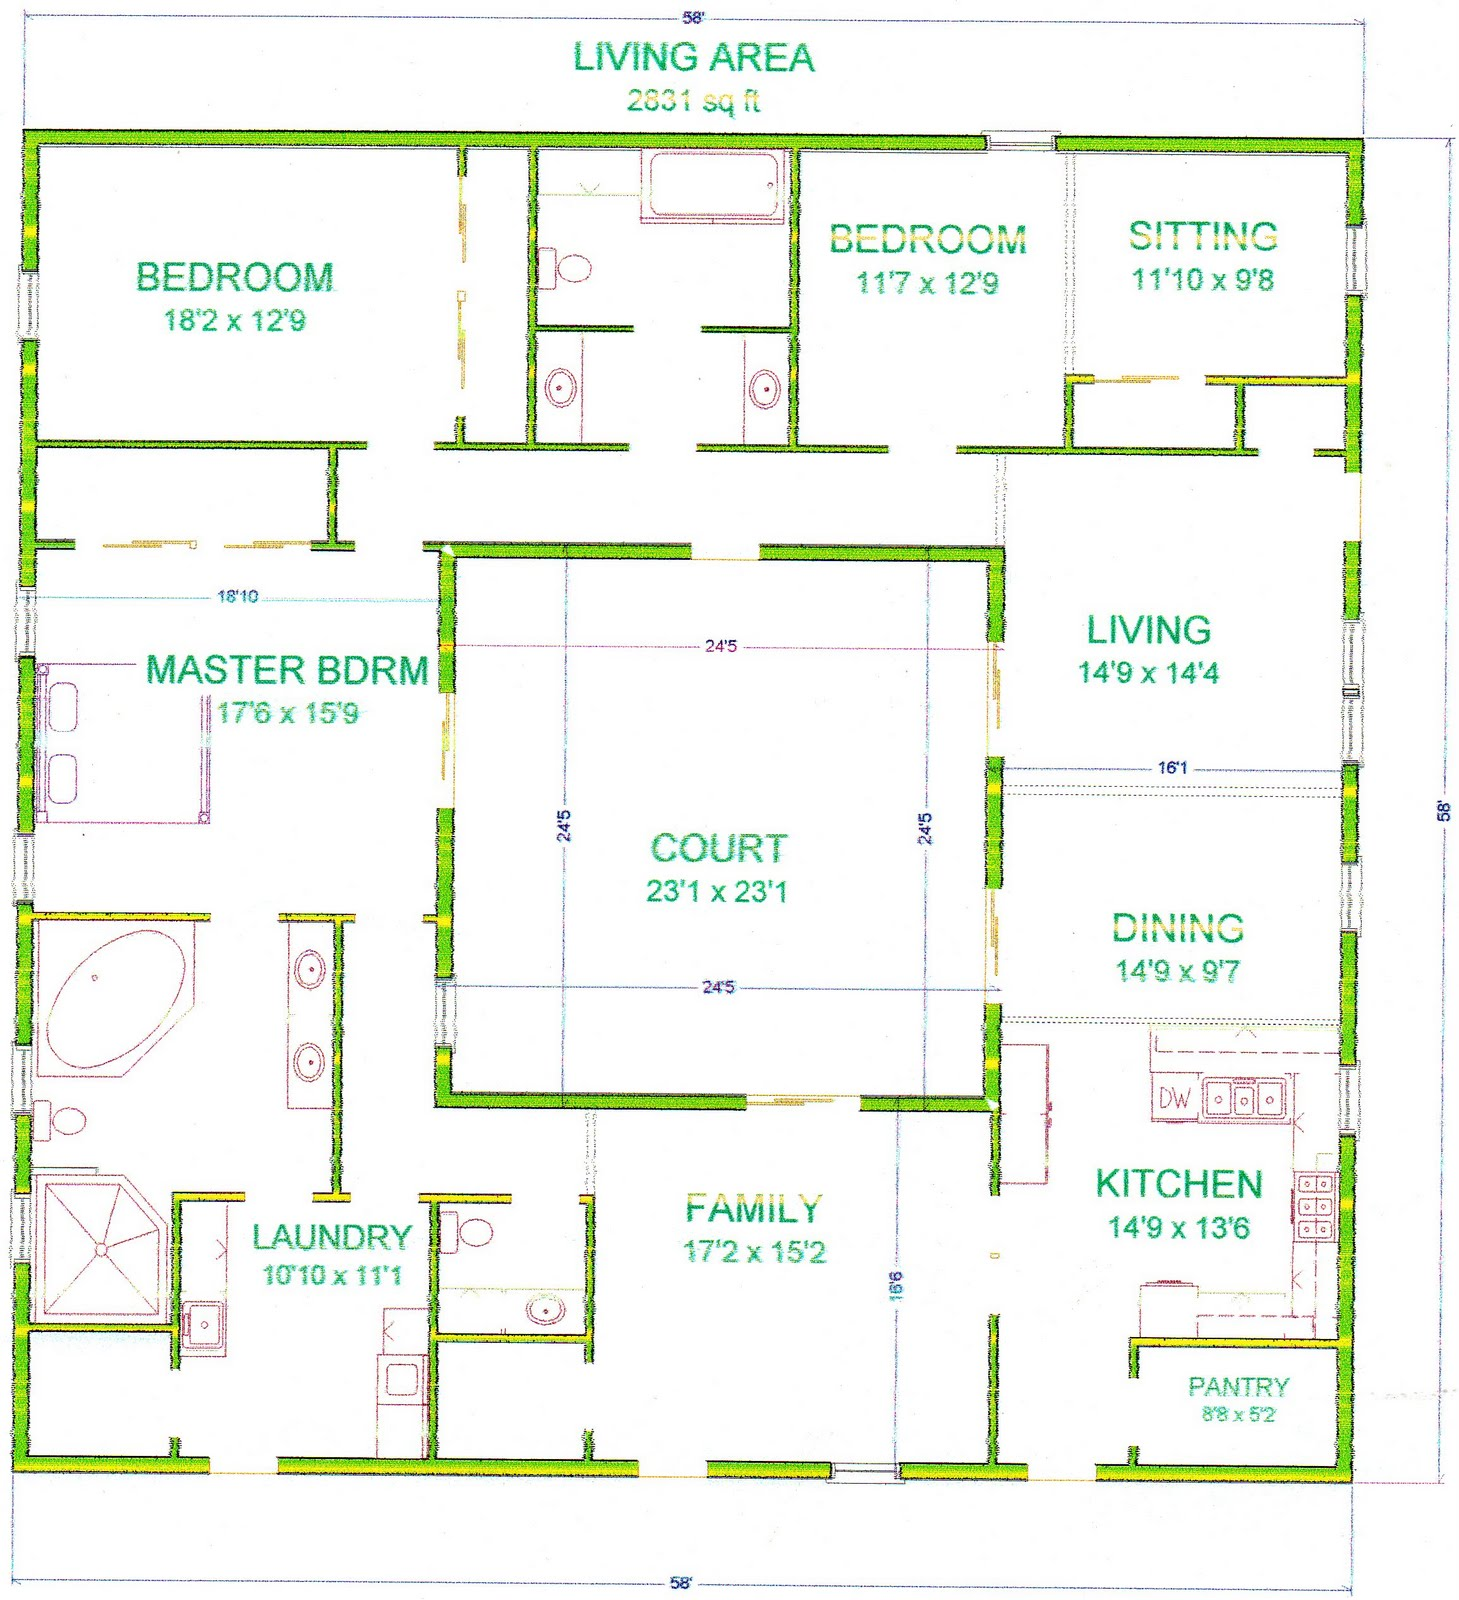 Grama sue 39 s floor plan play land olivia 39 s courtyard for Play plan